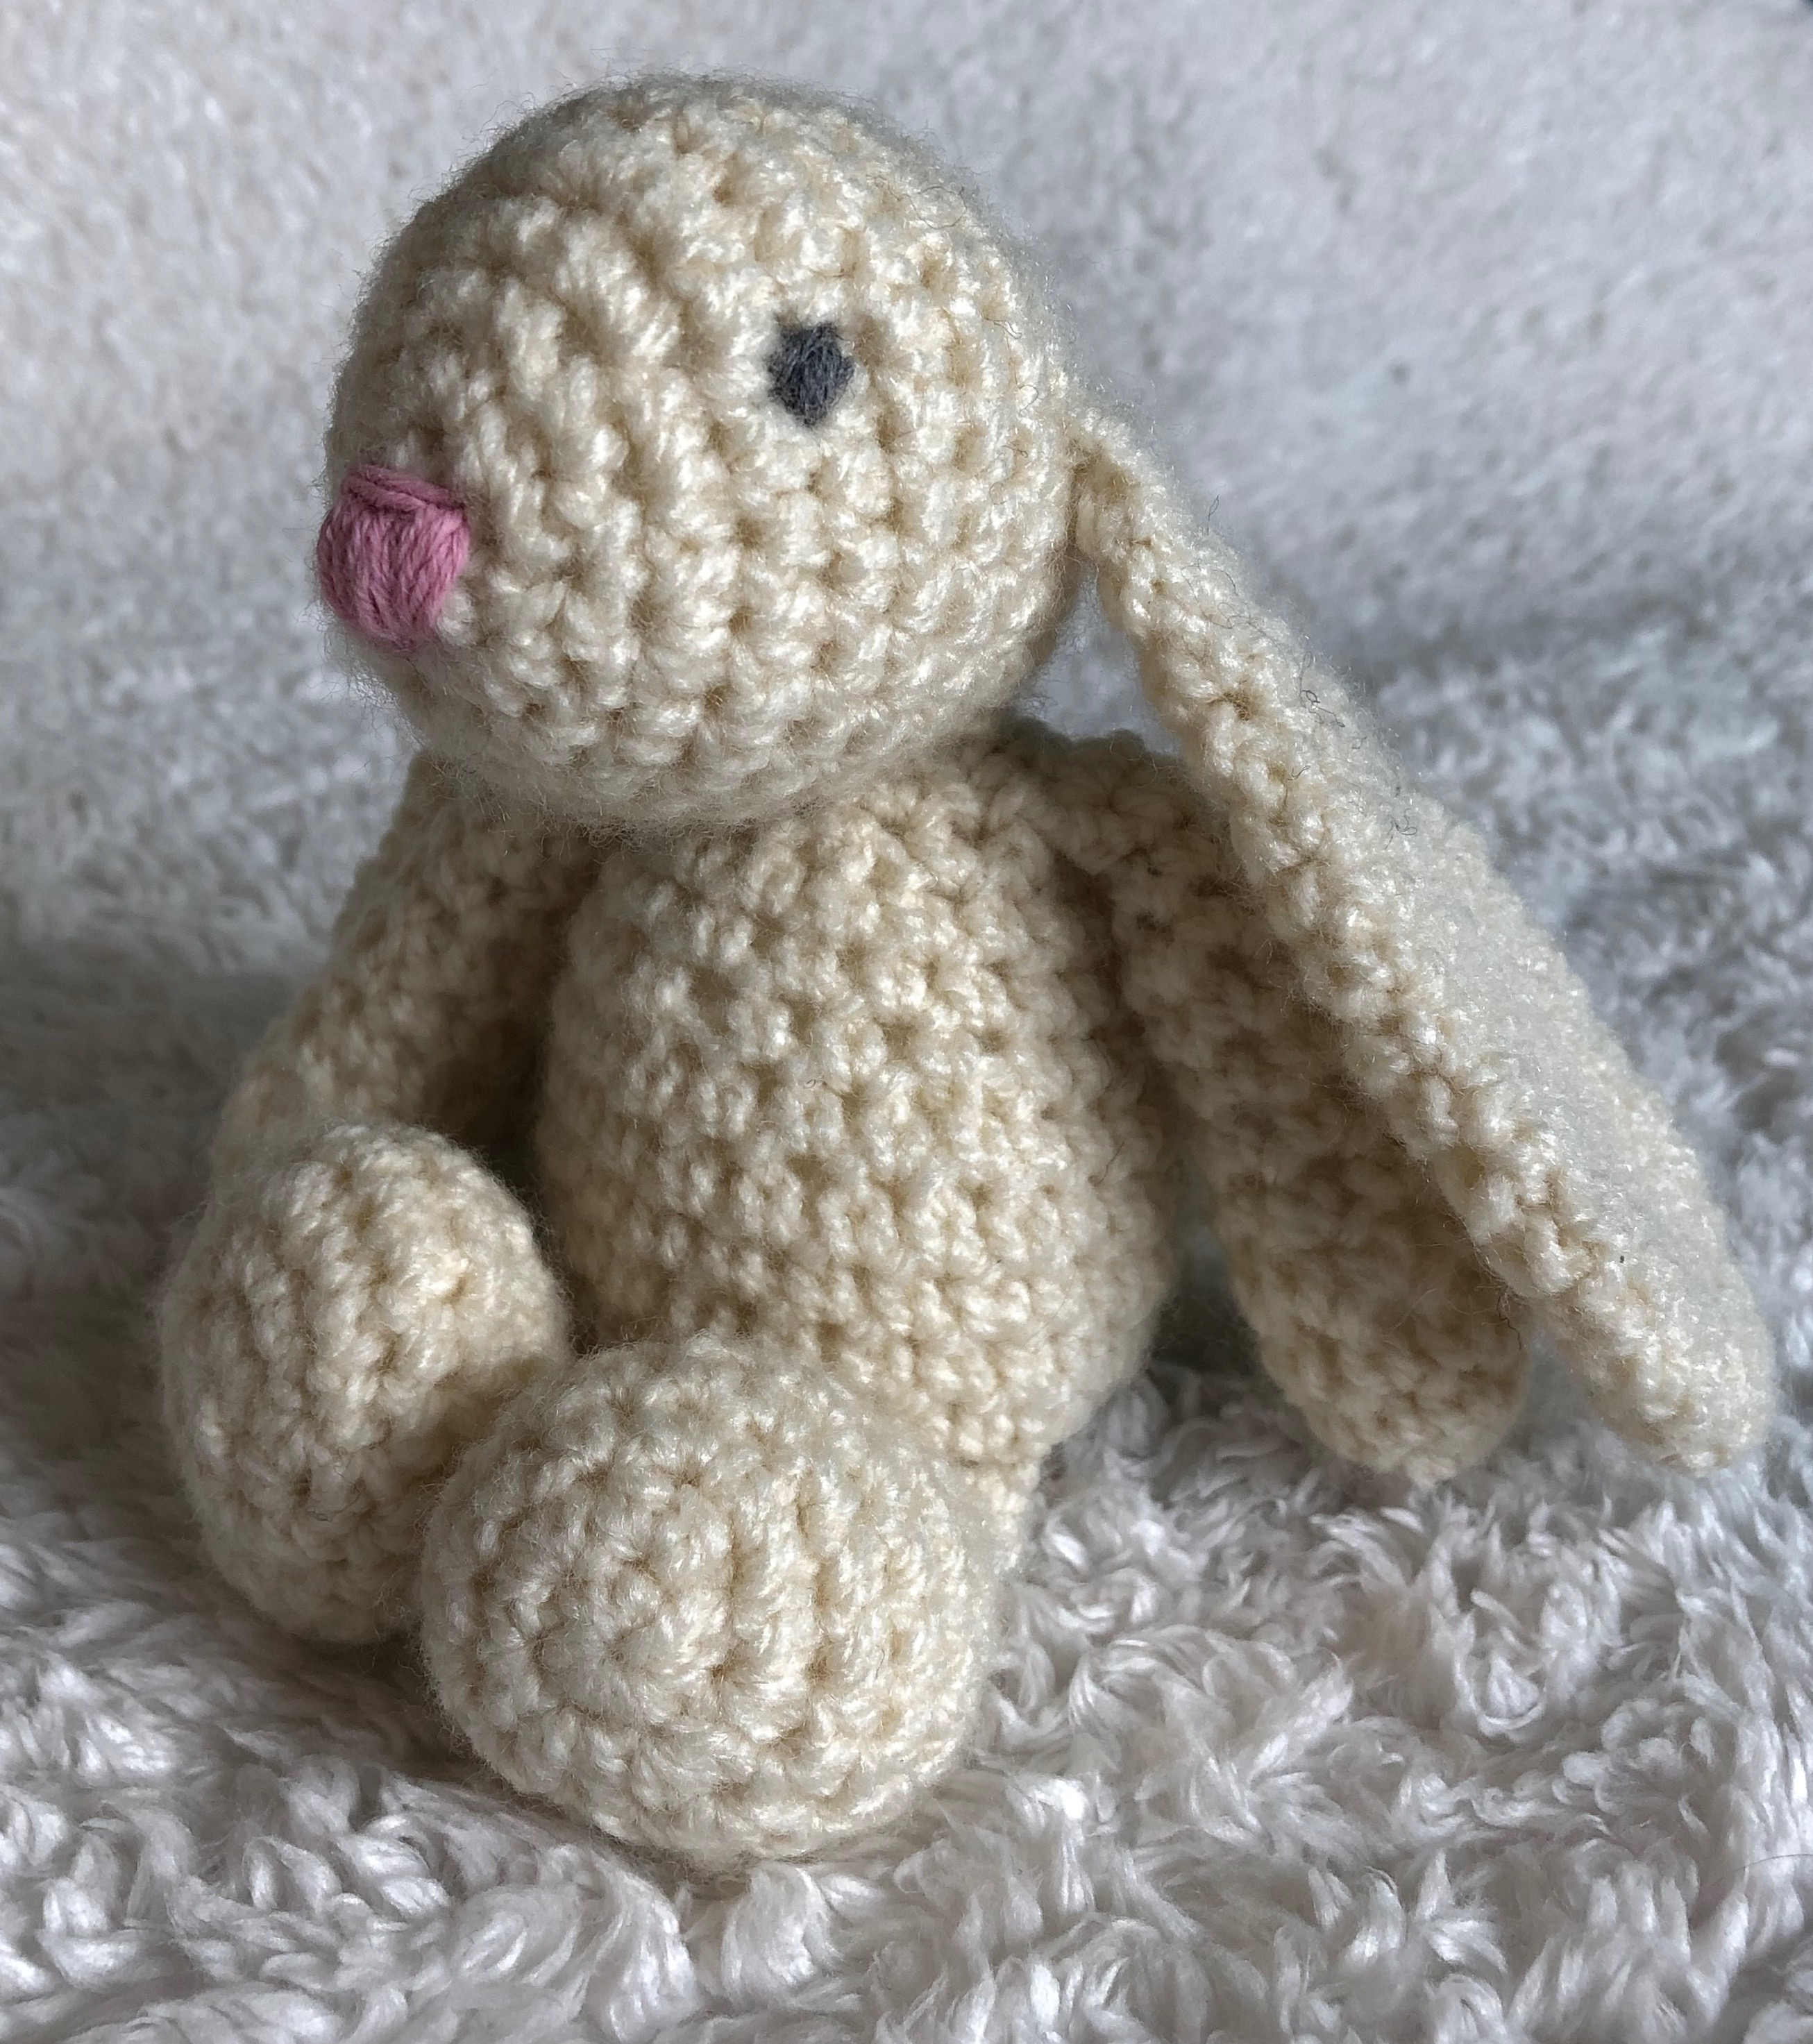 A small handmade, crocheted cream bunny rabbit with a pink crocheted heart.